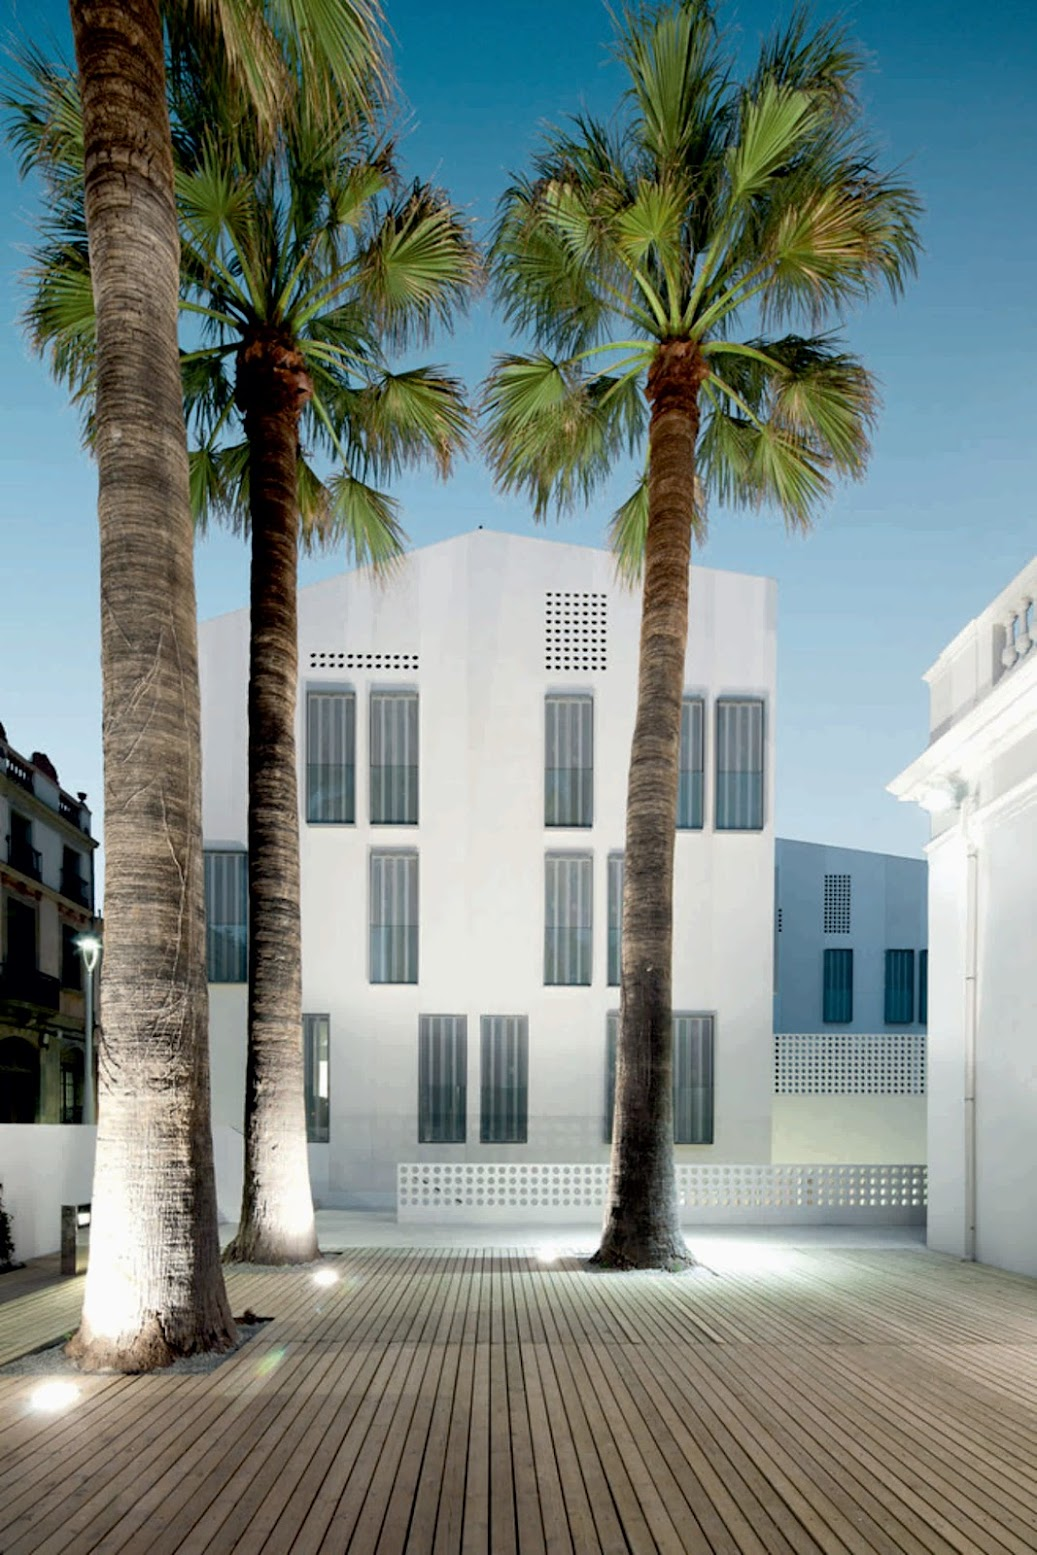 08340 Vilassar de Mar, Barcellona, Spagna: [CAN BISA BY BATLLE AND ROIG ARQUITECTES]